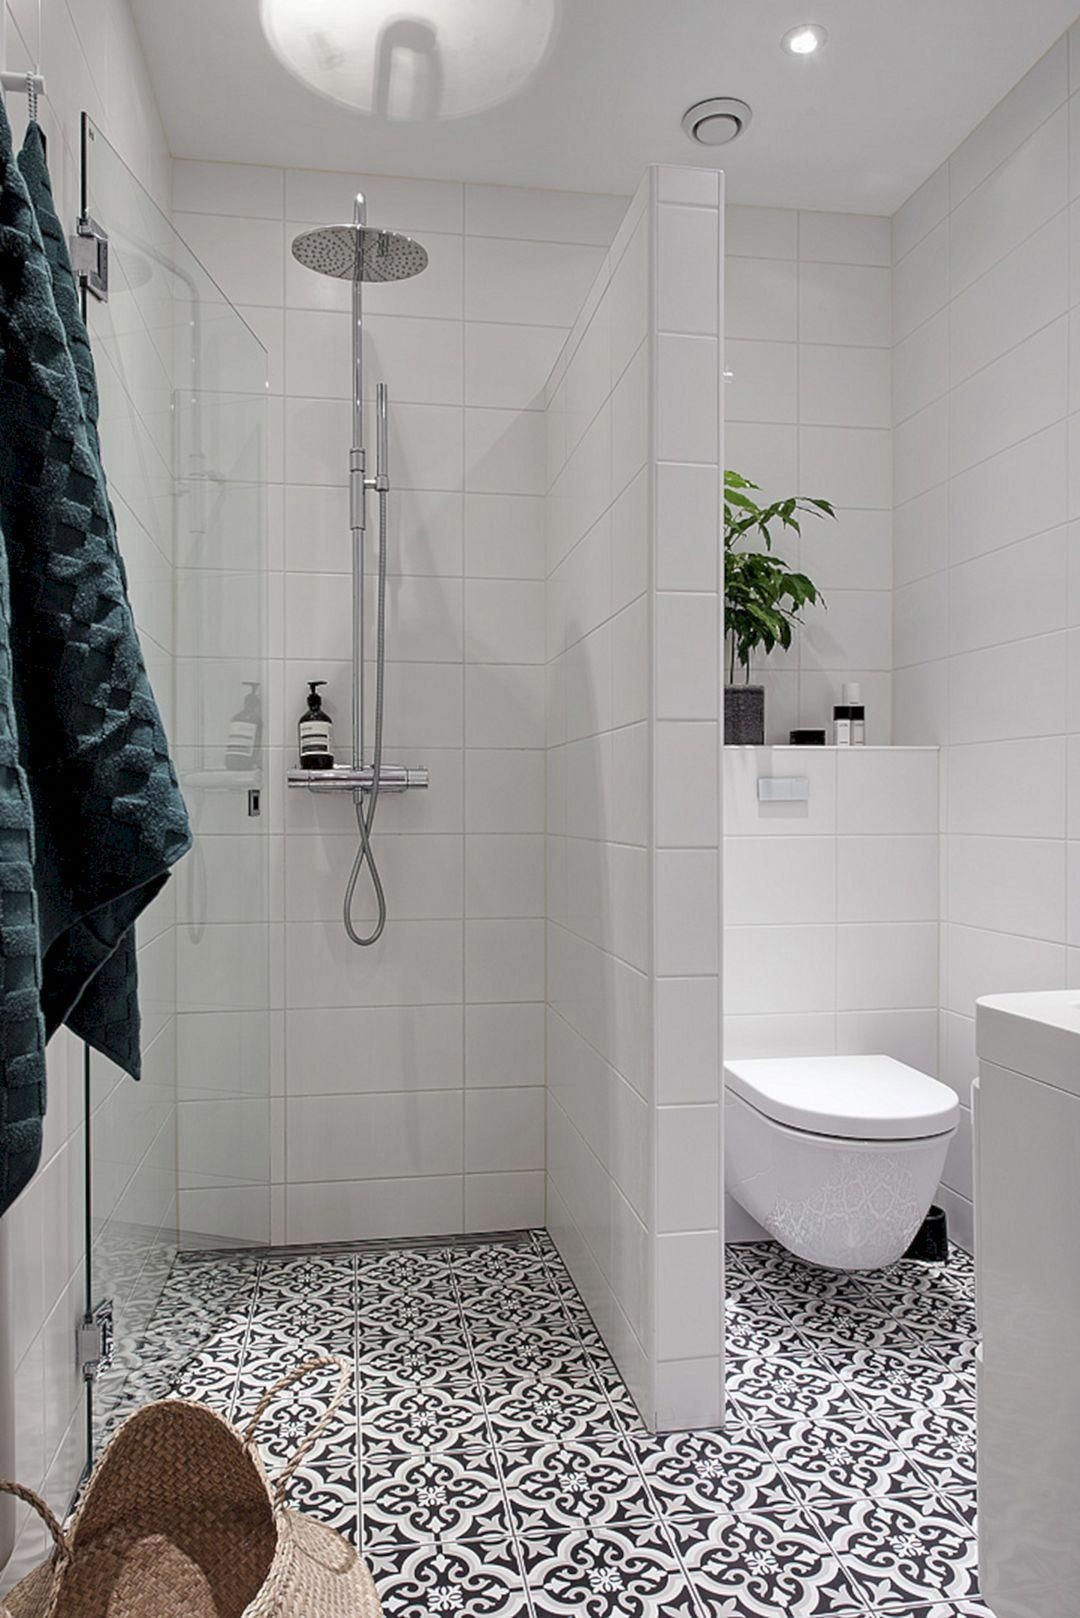 31 Simple Bathroom Designs For Low Budget Decoration Simple Bathroom Designs Small Bathroom Remodel Beautiful Small Bathrooms